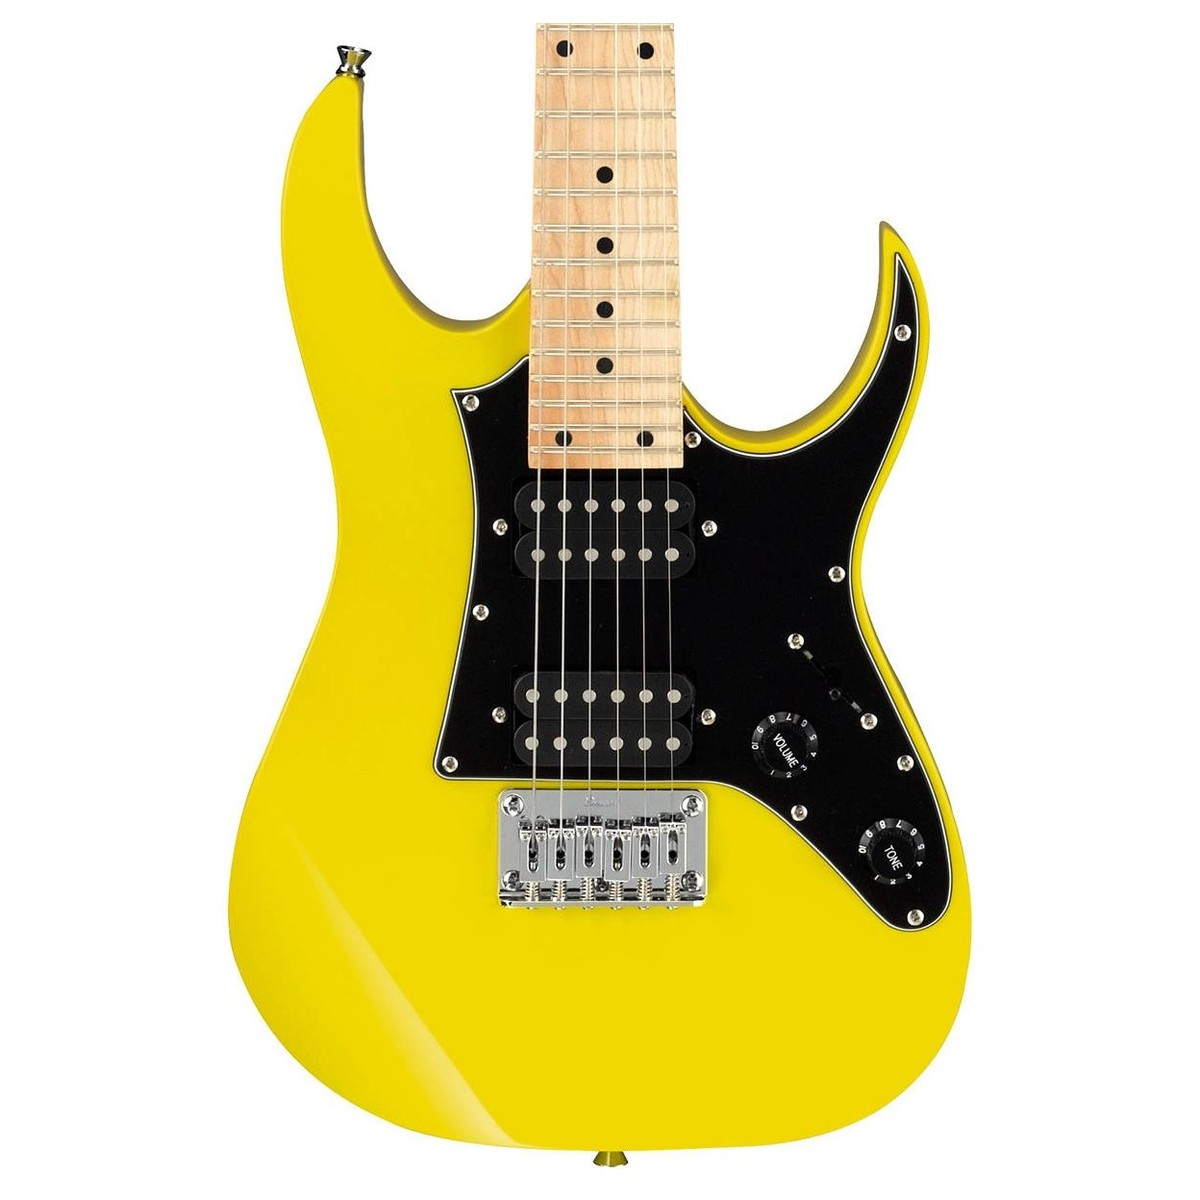 Ibanez MiKro GRGM21M Electric Guitar, Yellow at Gear4music.com